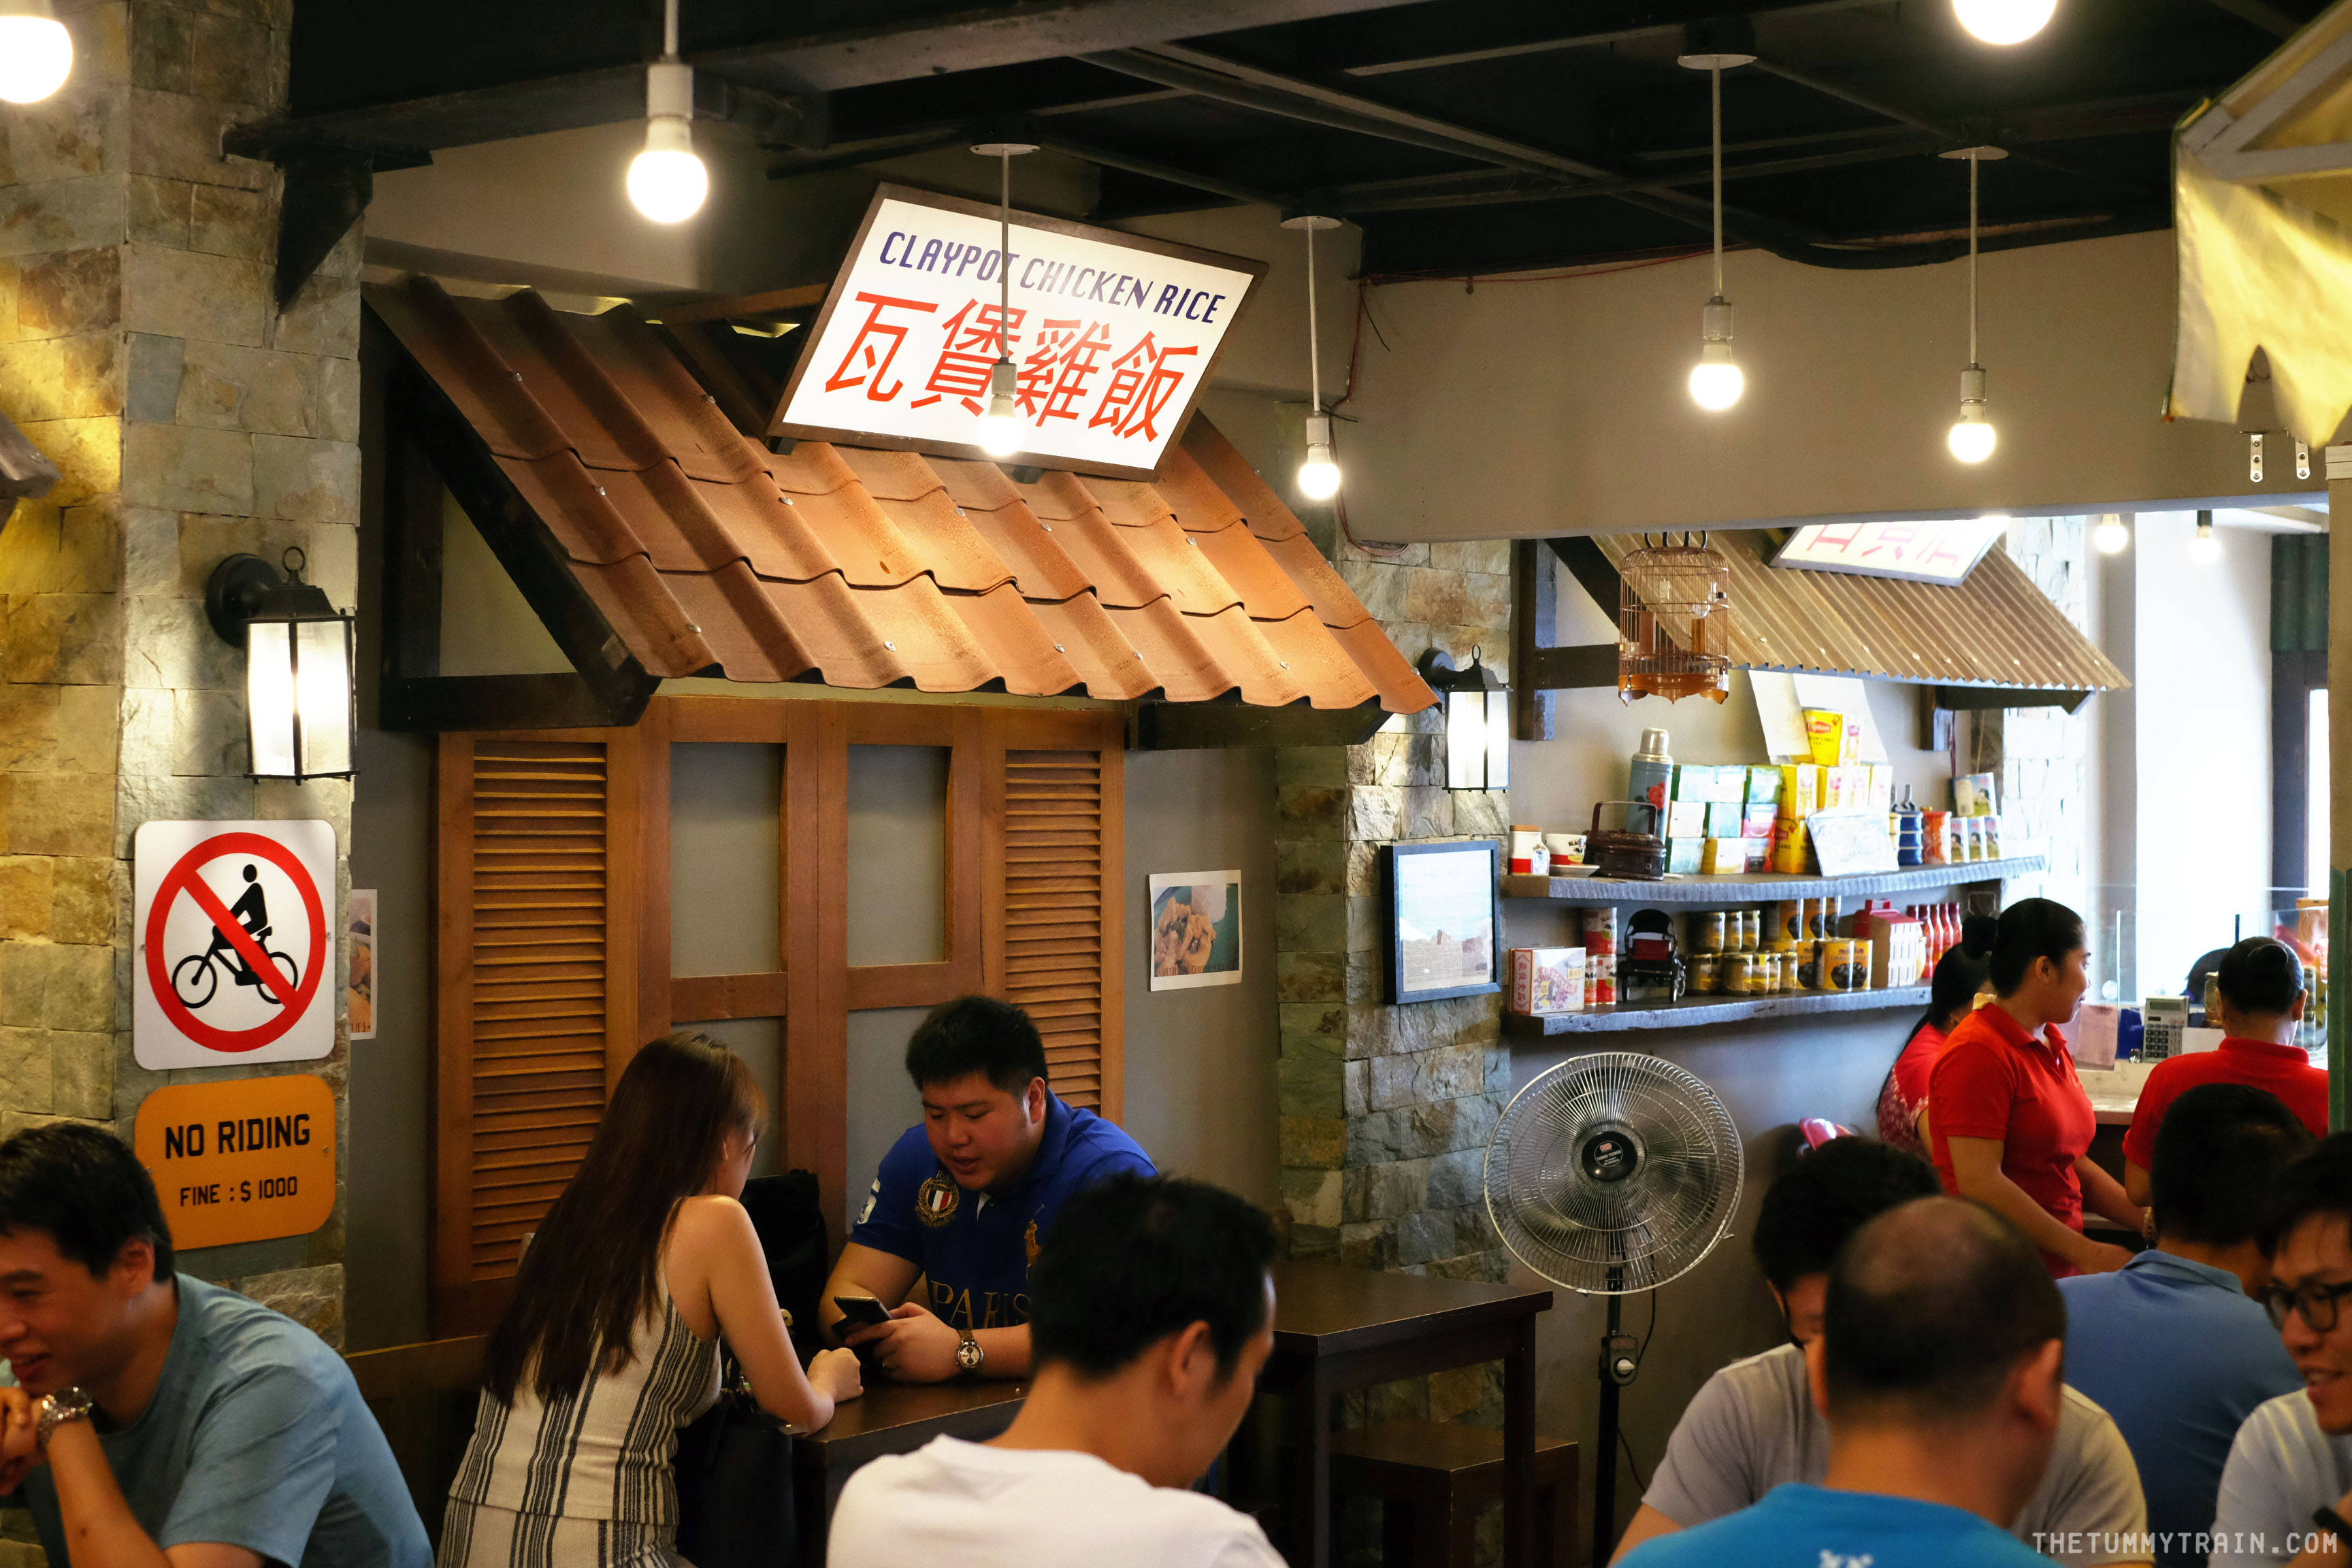 Shiok Shiok 1 - A full serving of Singaporean fare at Shiok Shiok QC